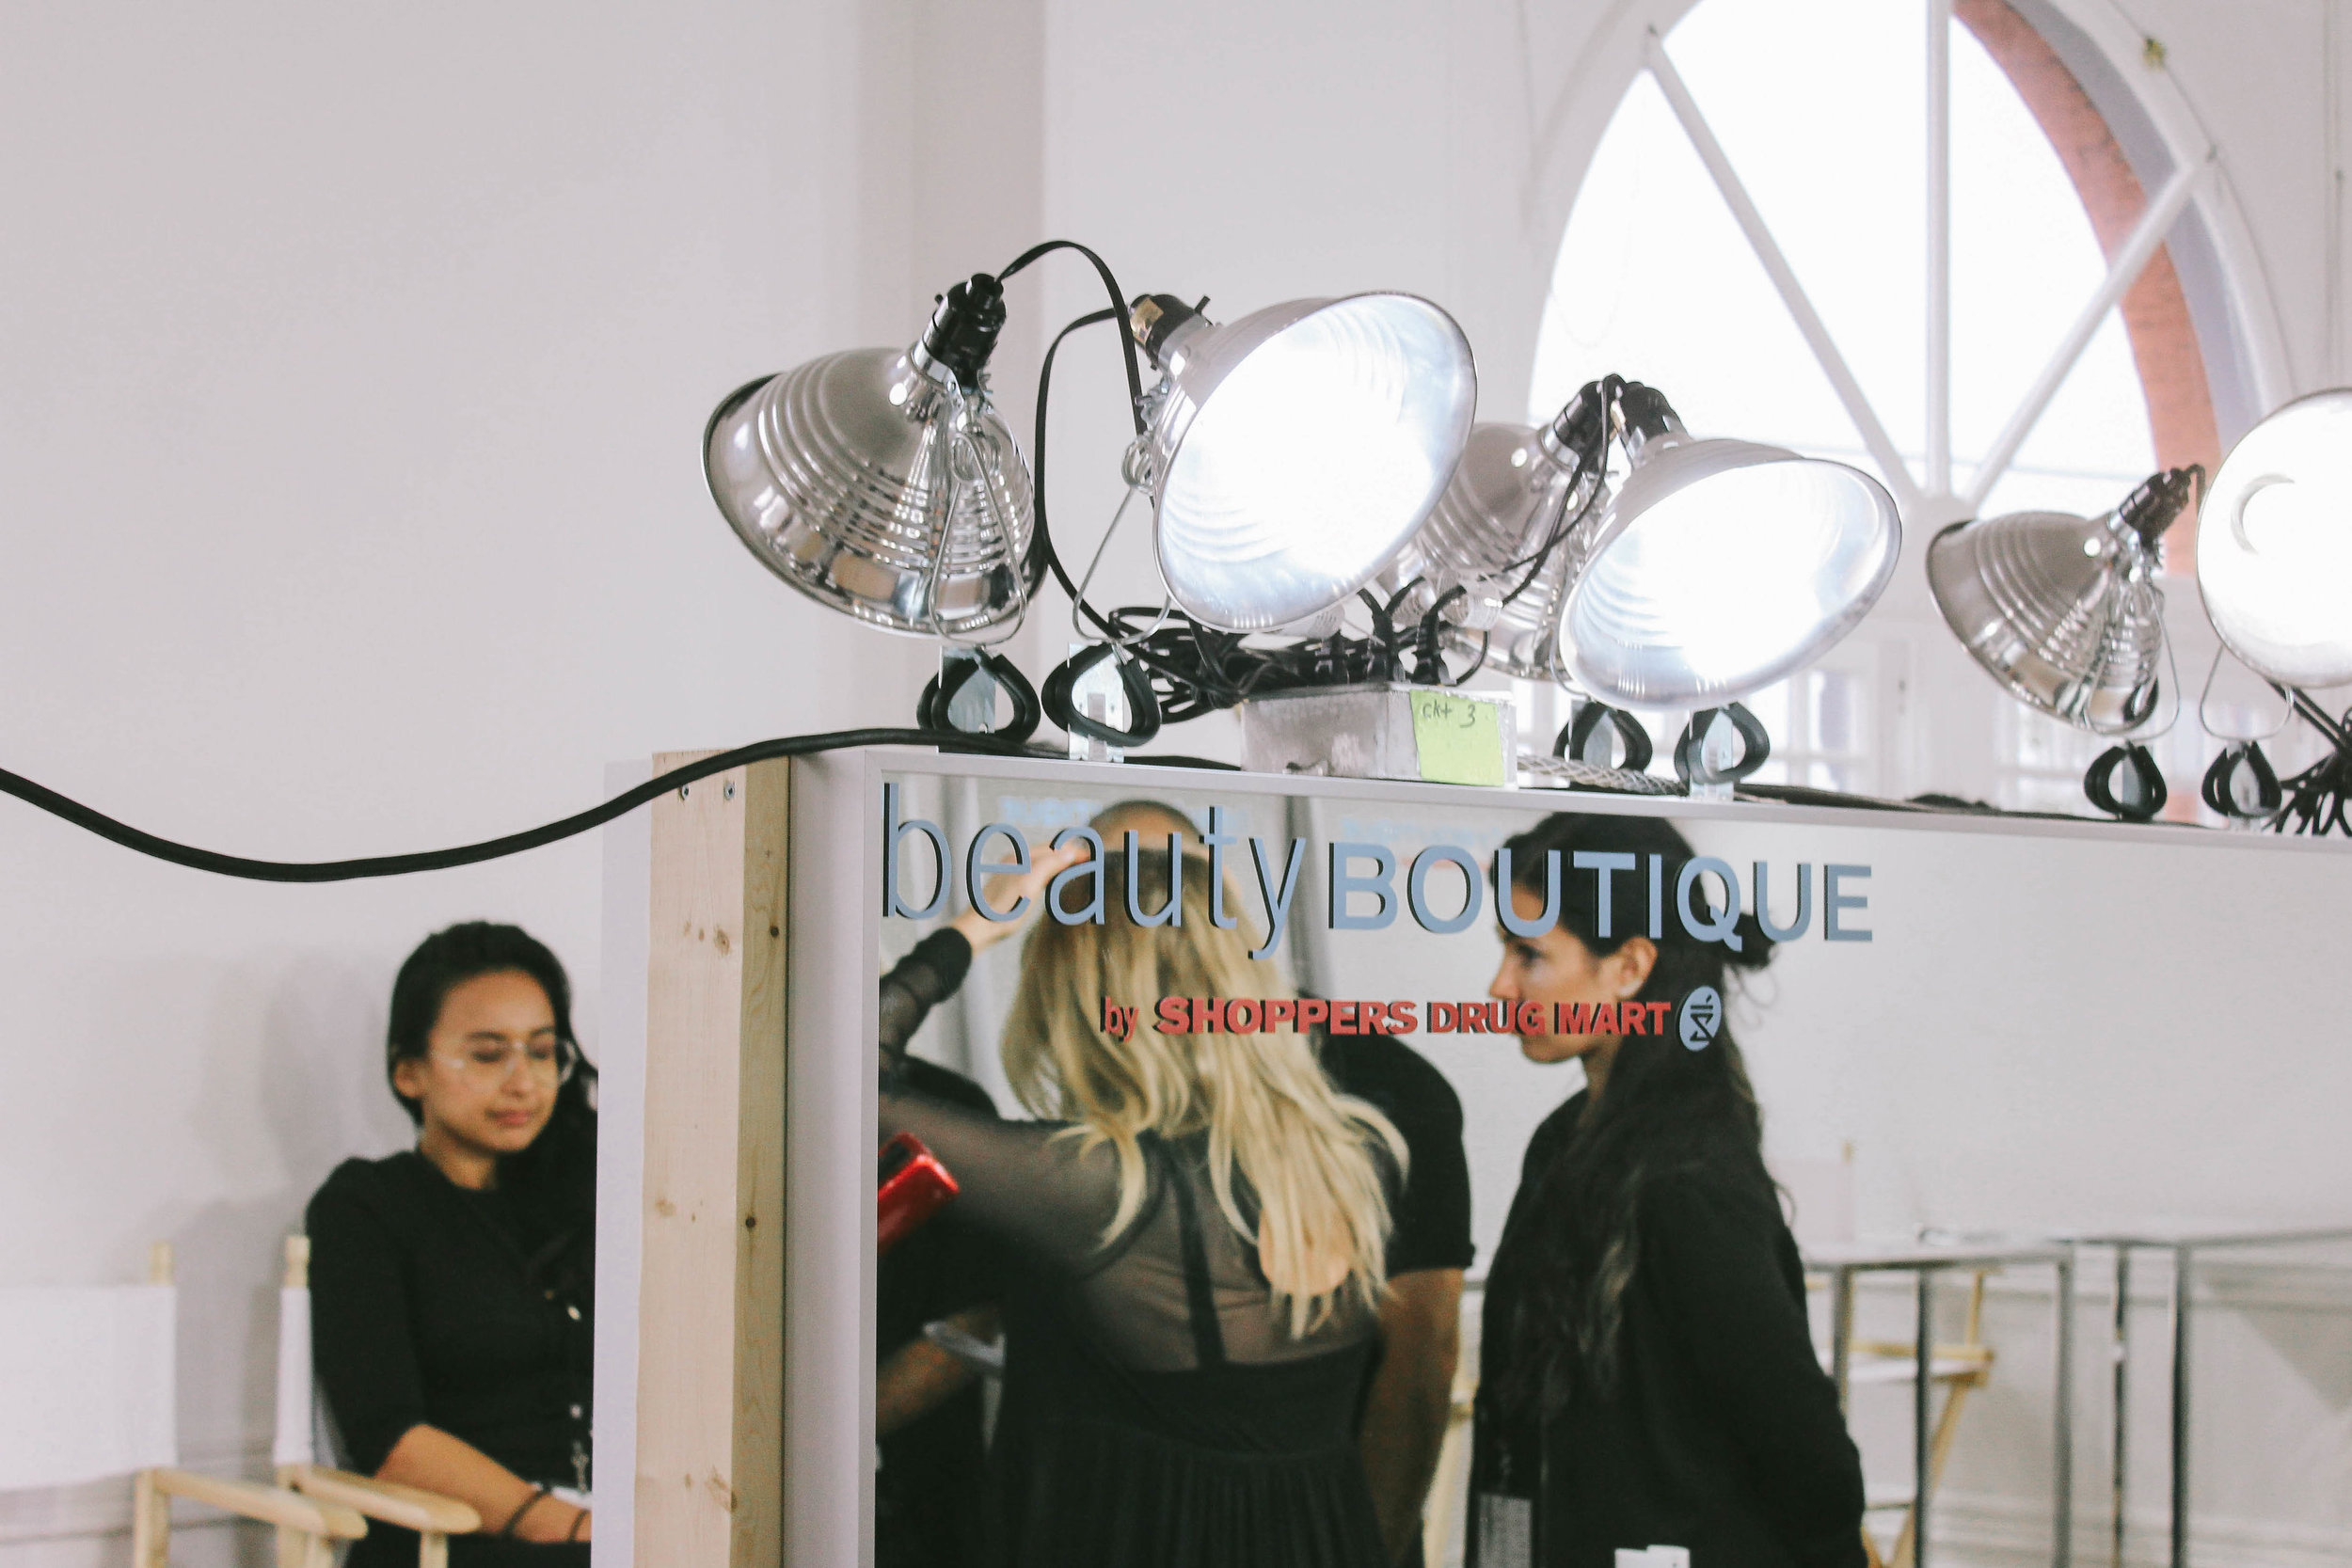 Behind-the-scenes photography at the Beauty Boutique by Shoppers Drug Mart at RE\SET™